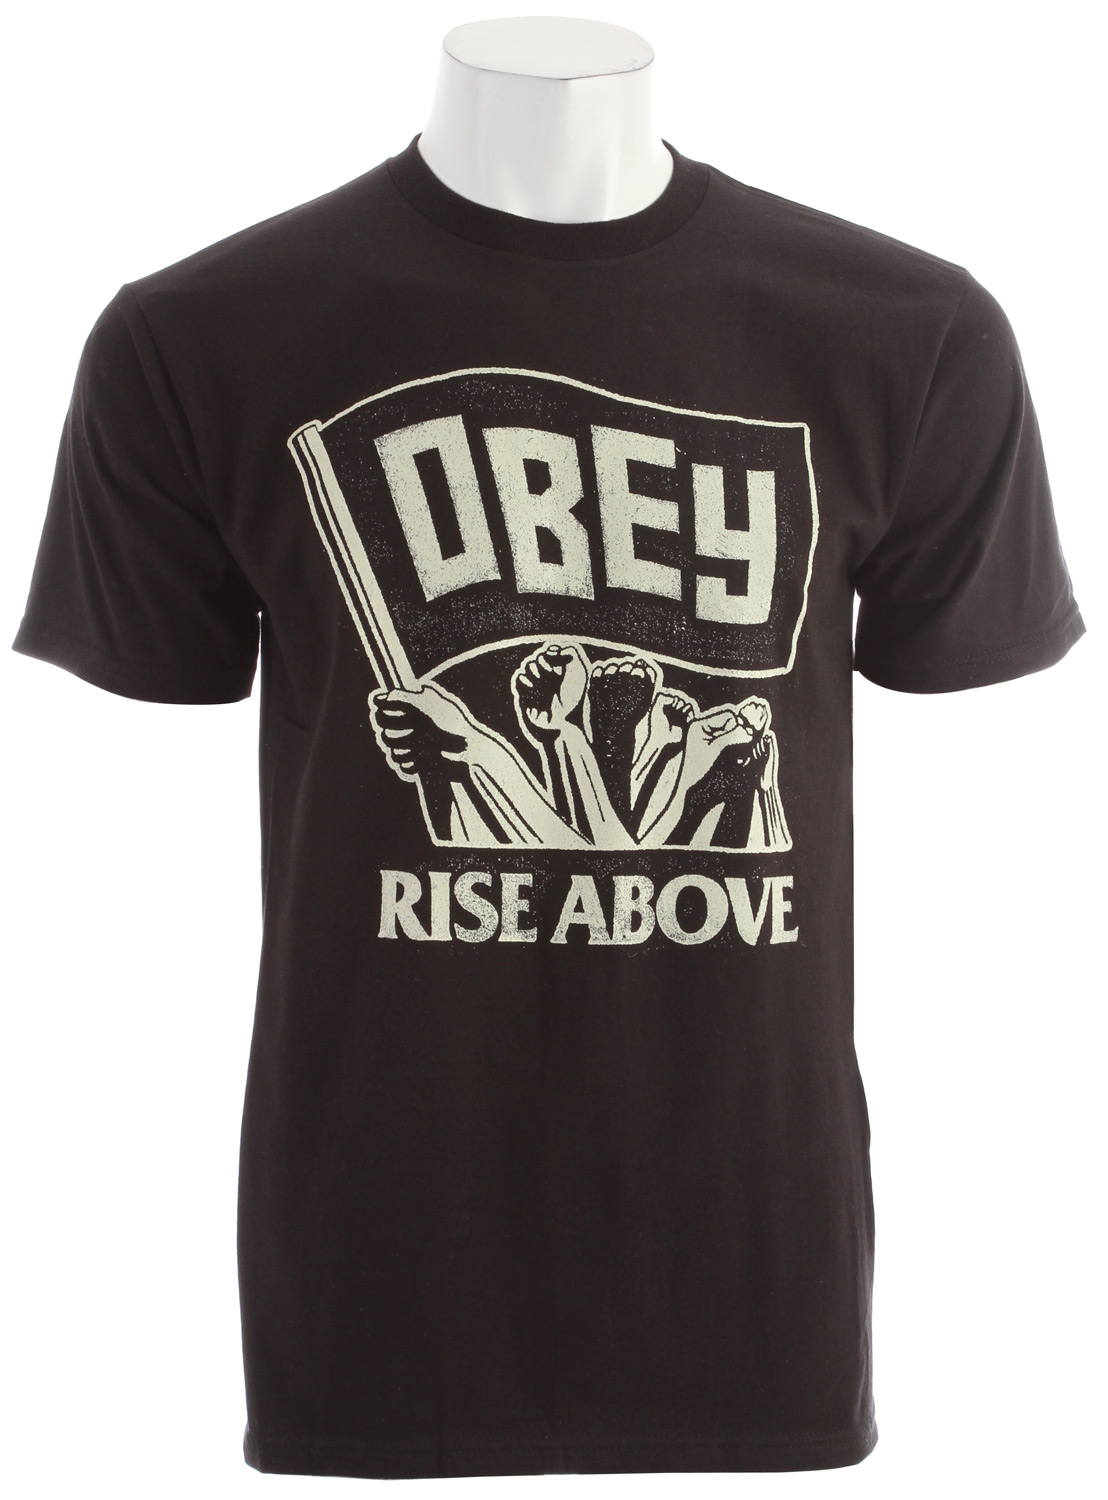 Key Features of the Obey Rise Above Flag Basic T-Shirt: Heavy weight Regular fit tee with inset Rib Crew neck 100% Cotton - $20.95